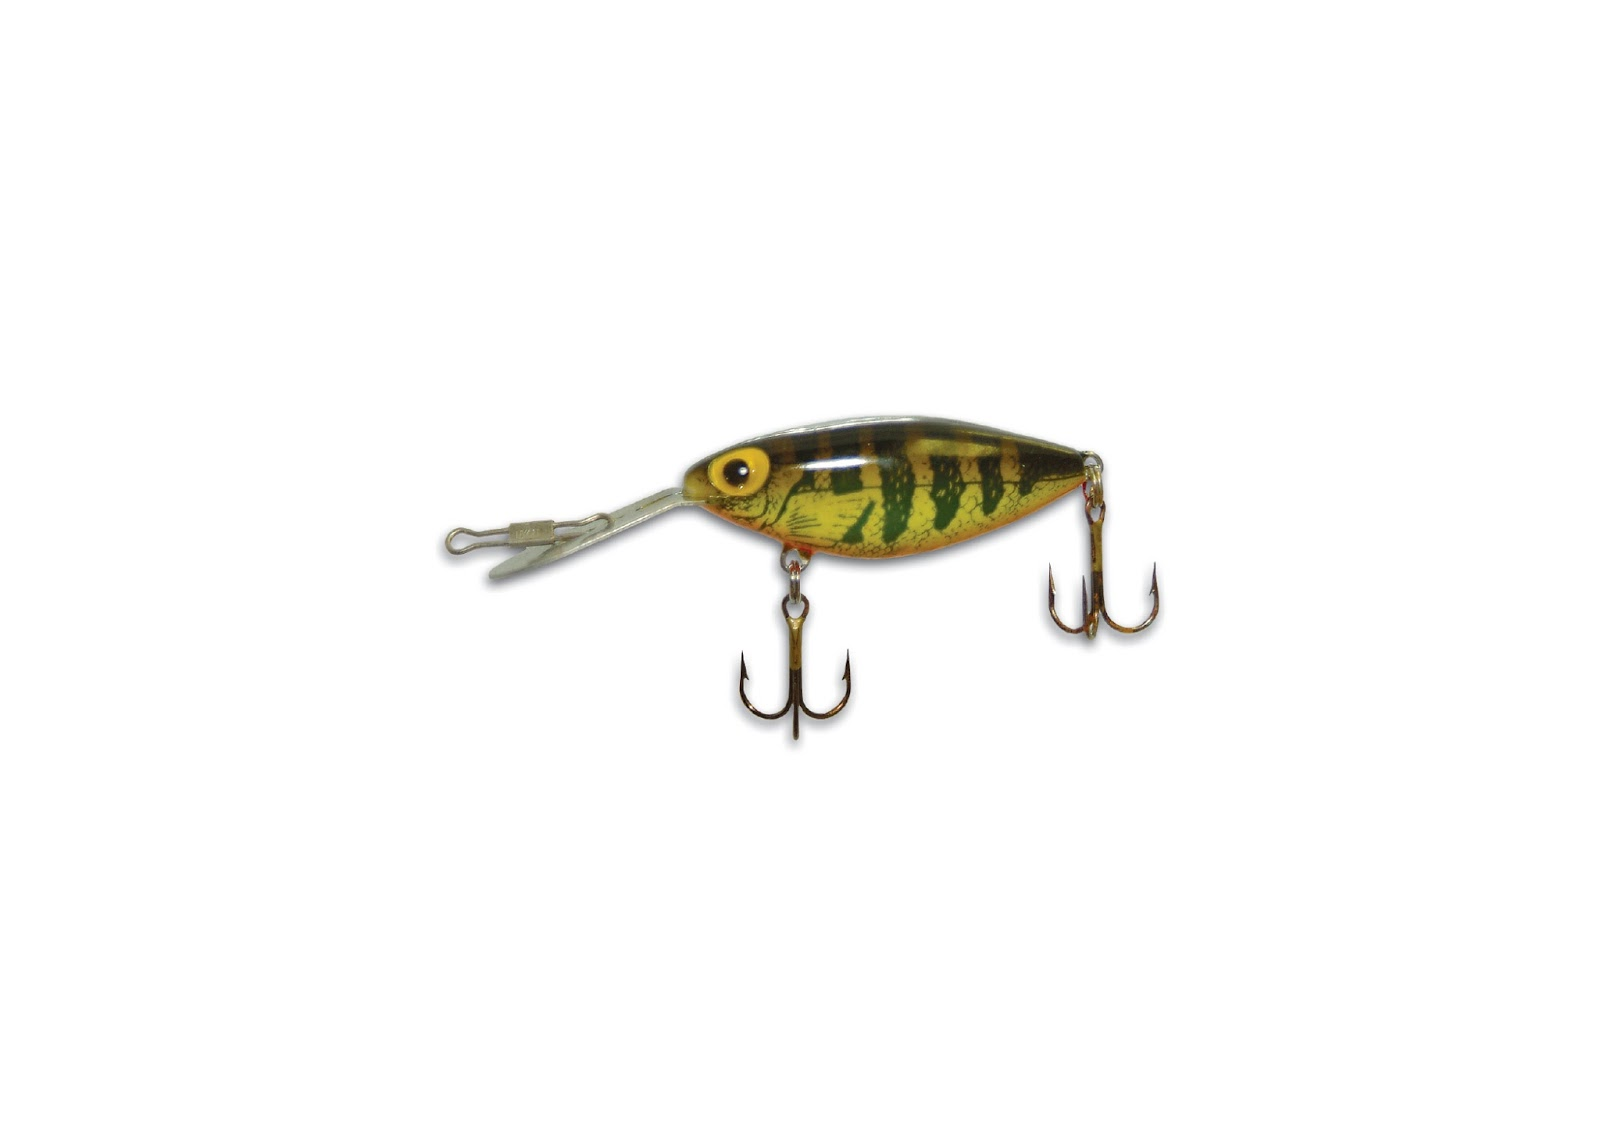 3//8 1//2 3//4 Lake Erie Jigs Choice of Hook or 1//4 oz Flat Head Jigs 5//8